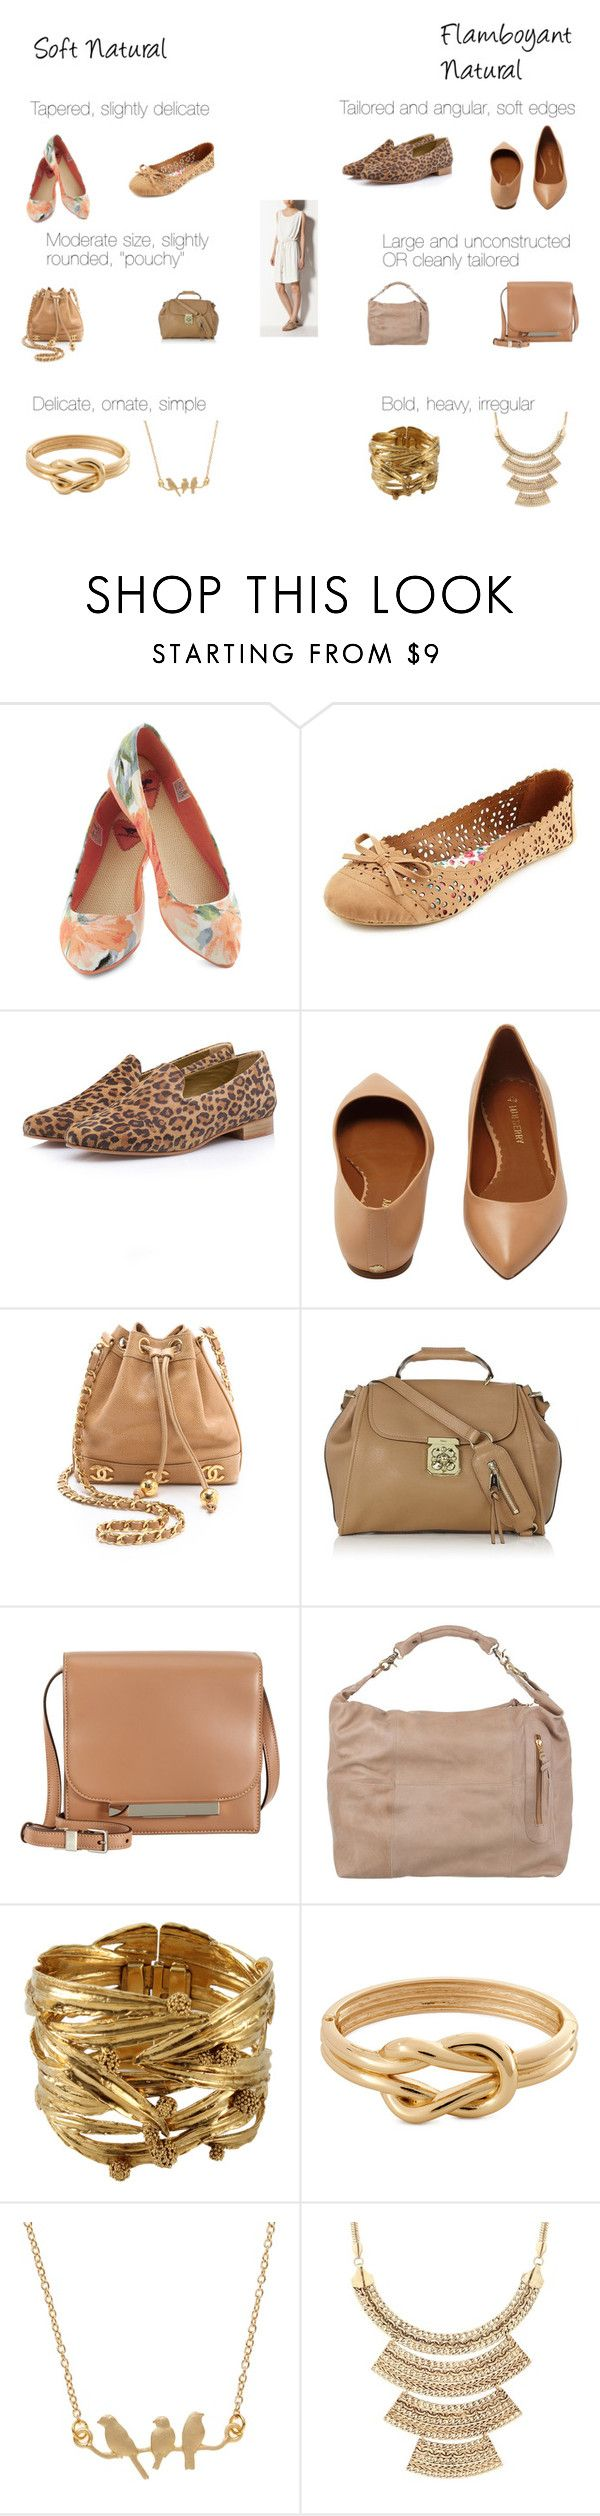 SImple dress - SN vs FN by oscillate on Polyvore featuring Fab., Mulberry, Charlotte Russe, WGACA, The Row, Chloé, Fab, Aurélie Bidermann, H&M and MOOD